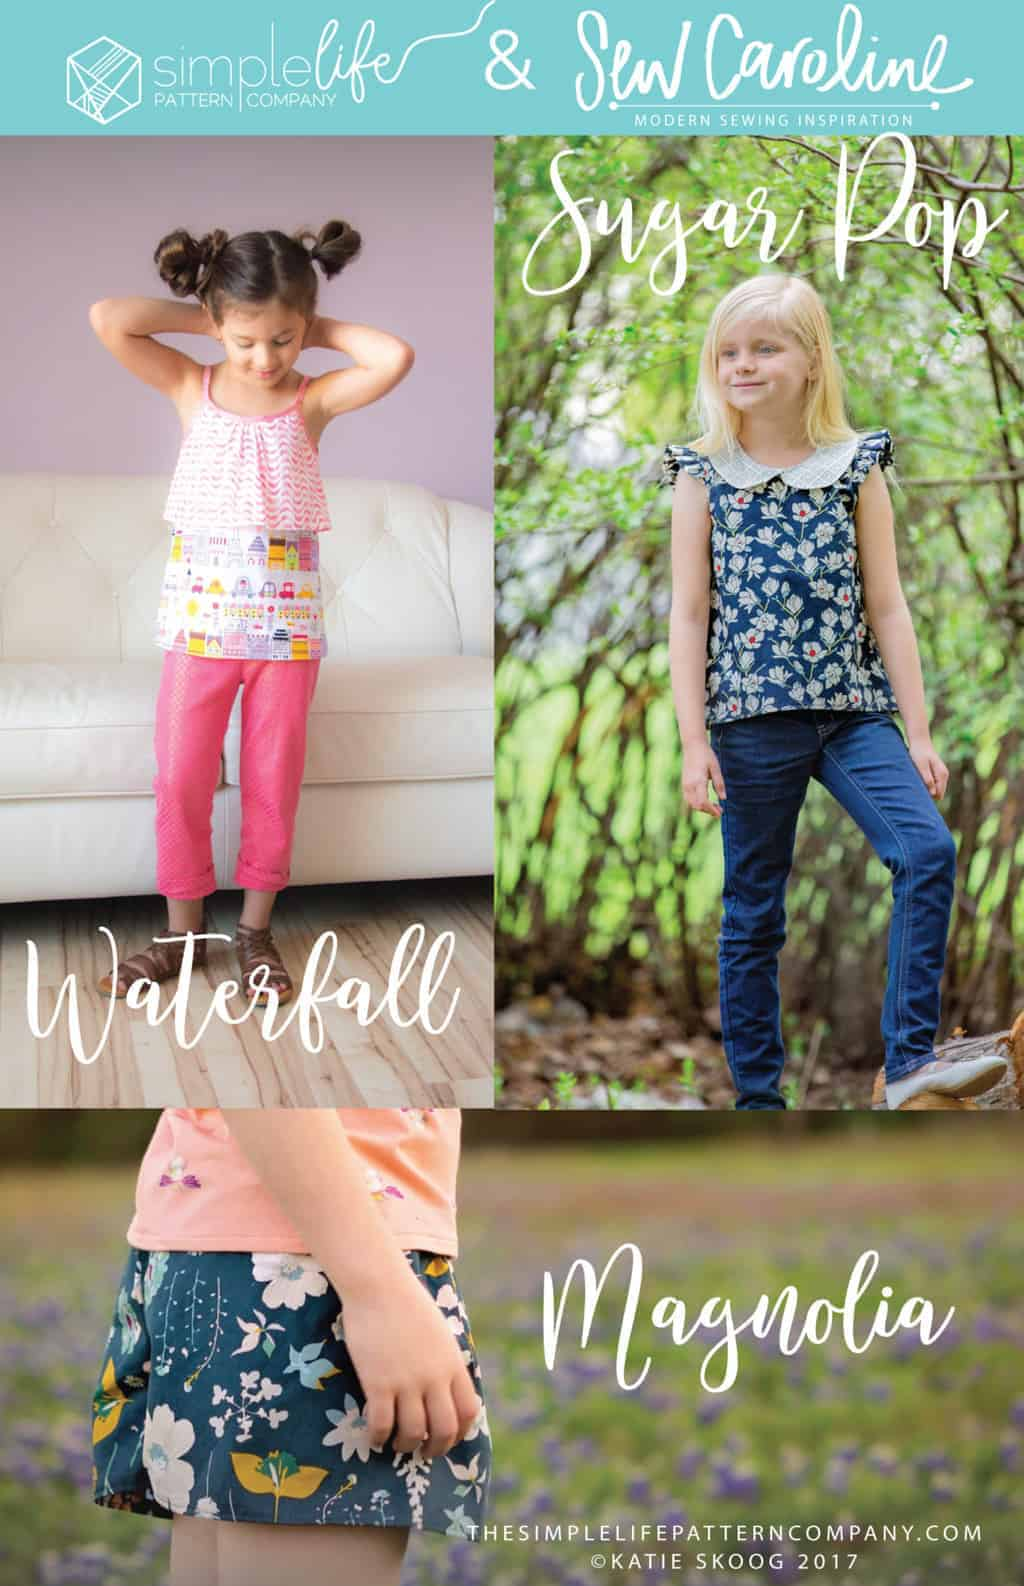 Simple Life Pattern Company in collaboration with Sew Caroline Magnolia shorts skirt shorts look like skirt flow relaxing play comfy comfortable shorts PDF sewing pattern for girls women sizes 2t-12 knit woven beginner fast sew #SLPco #SLPcoMagnolia #SLPcoXSC Simple Life Pattern Company in collaboration with Sew Caroline Waterfall Tank flounce top tie strap spaghetti straps spring summer fall layering top bows ruffle front pdf sewing pattern girls women 2t-12 Sugar Pop Top Simple Life Pattern Company Sew Caroline Hulse Woven cotton collar top high low hem full back snap button closure full collar tank flutter and cap sleeves vintage tunic classic style trendy kids spring summer fall winter